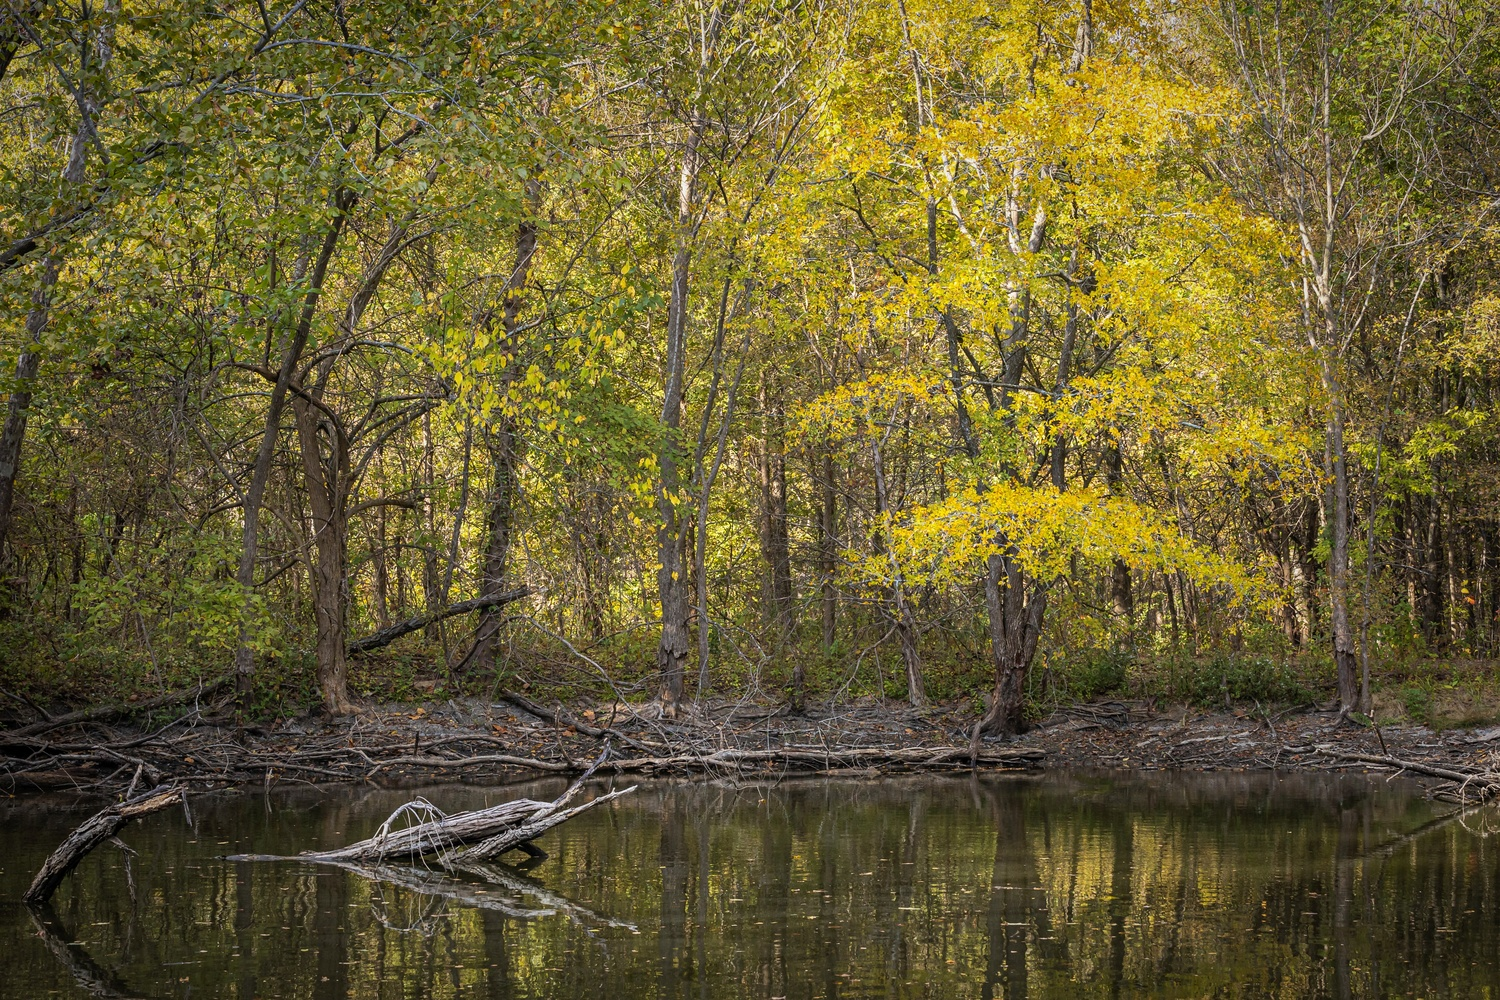 East Texas Pond by anthony crouch